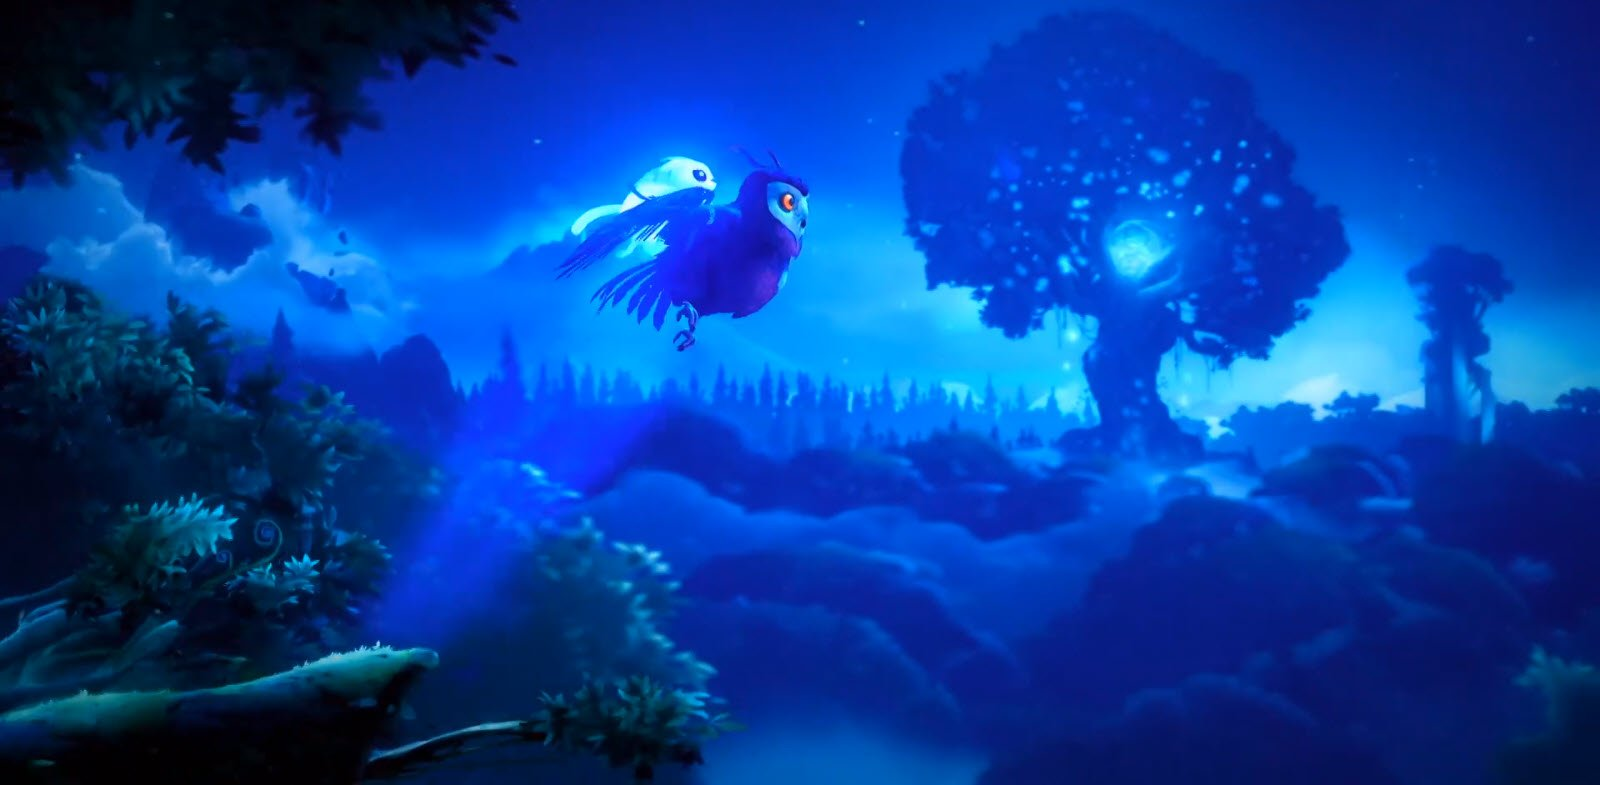 Ori and the Will of the Wisps sure looks breathtaking